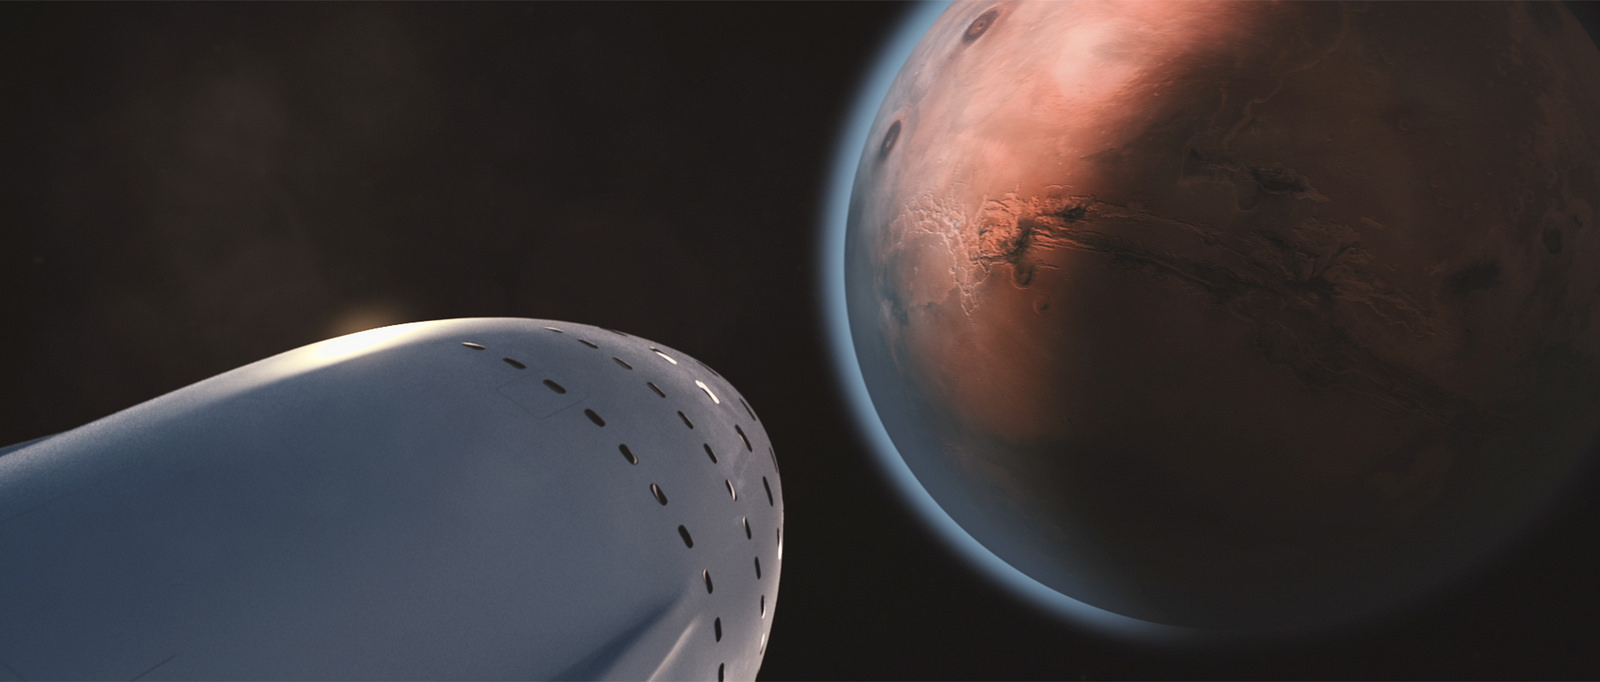 Interplanetary Transport System by SpaceX